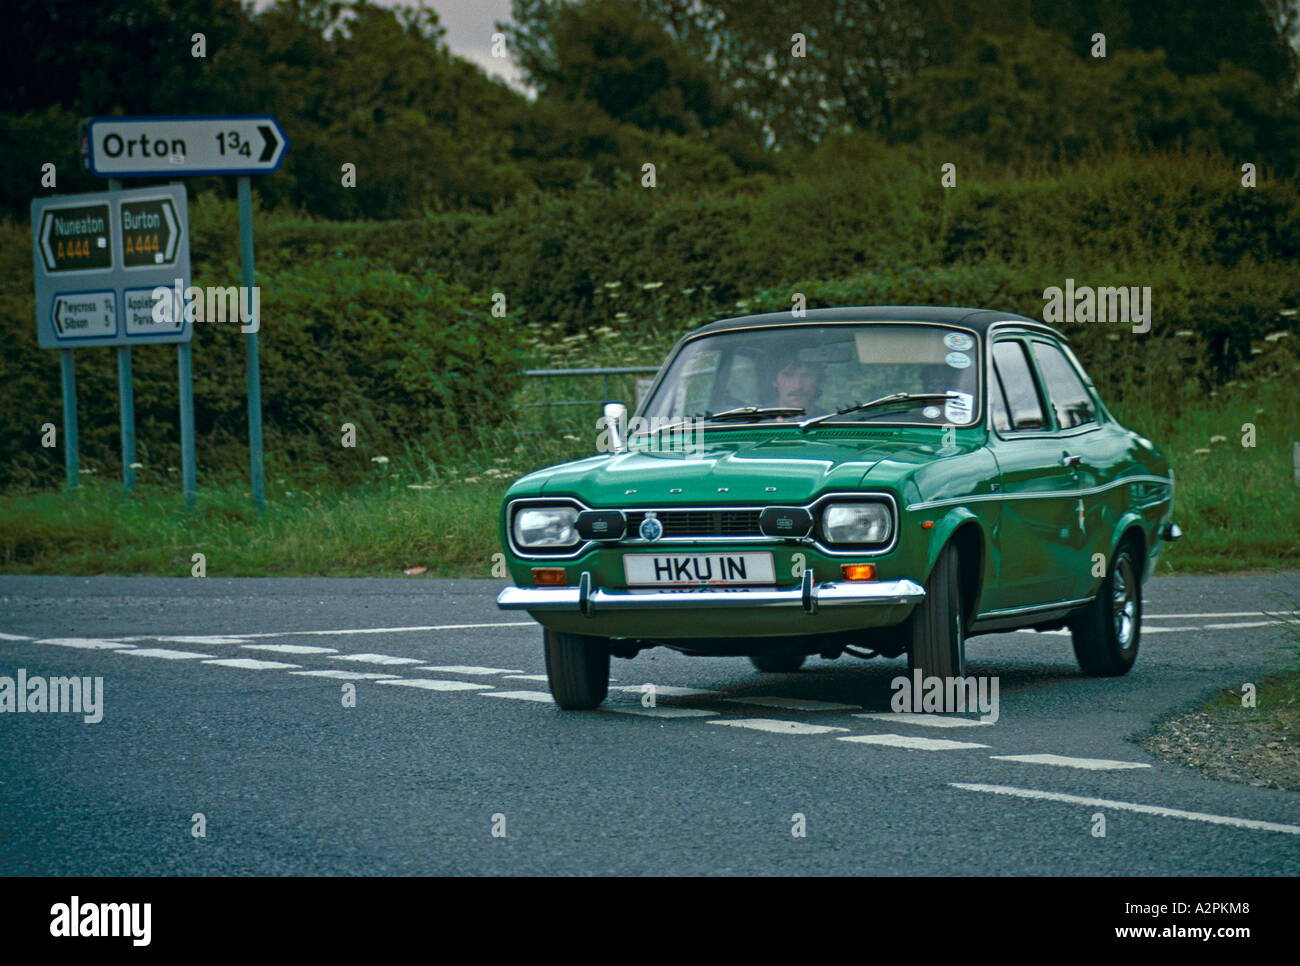 Lime colored ford escort